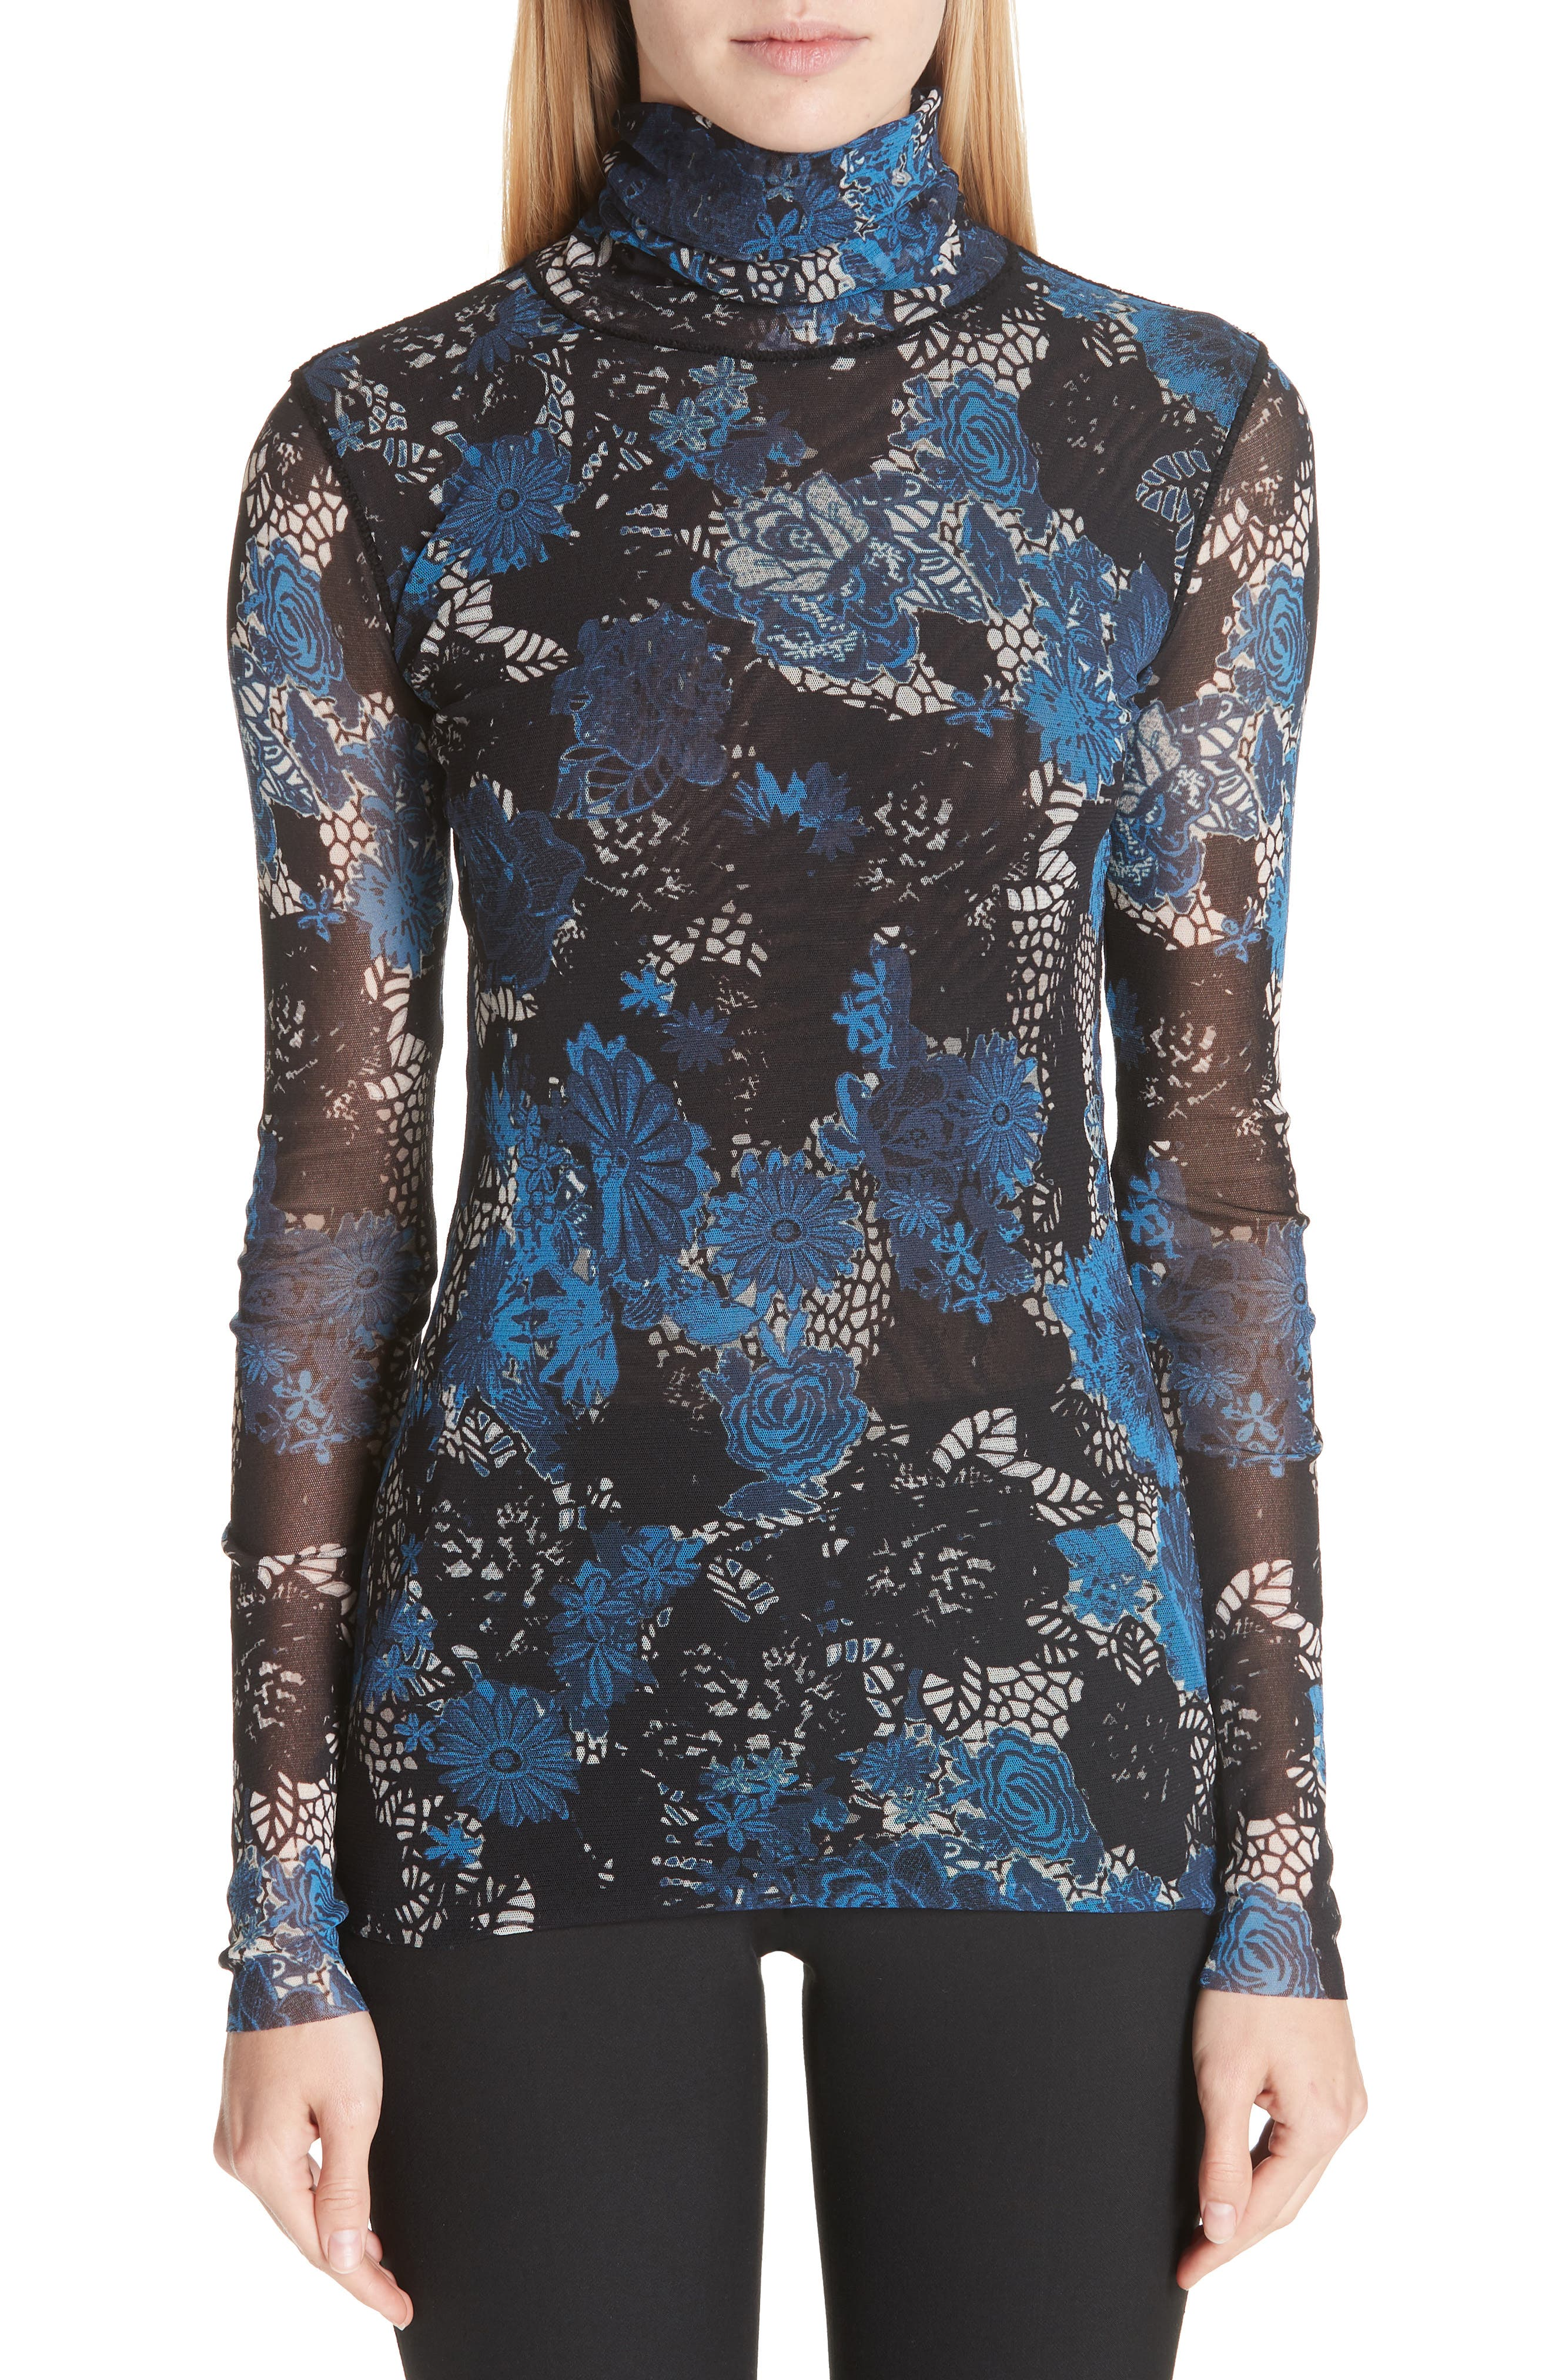 FUZZI Floral Lace Printed Tulle Turtleneck Top in Universo